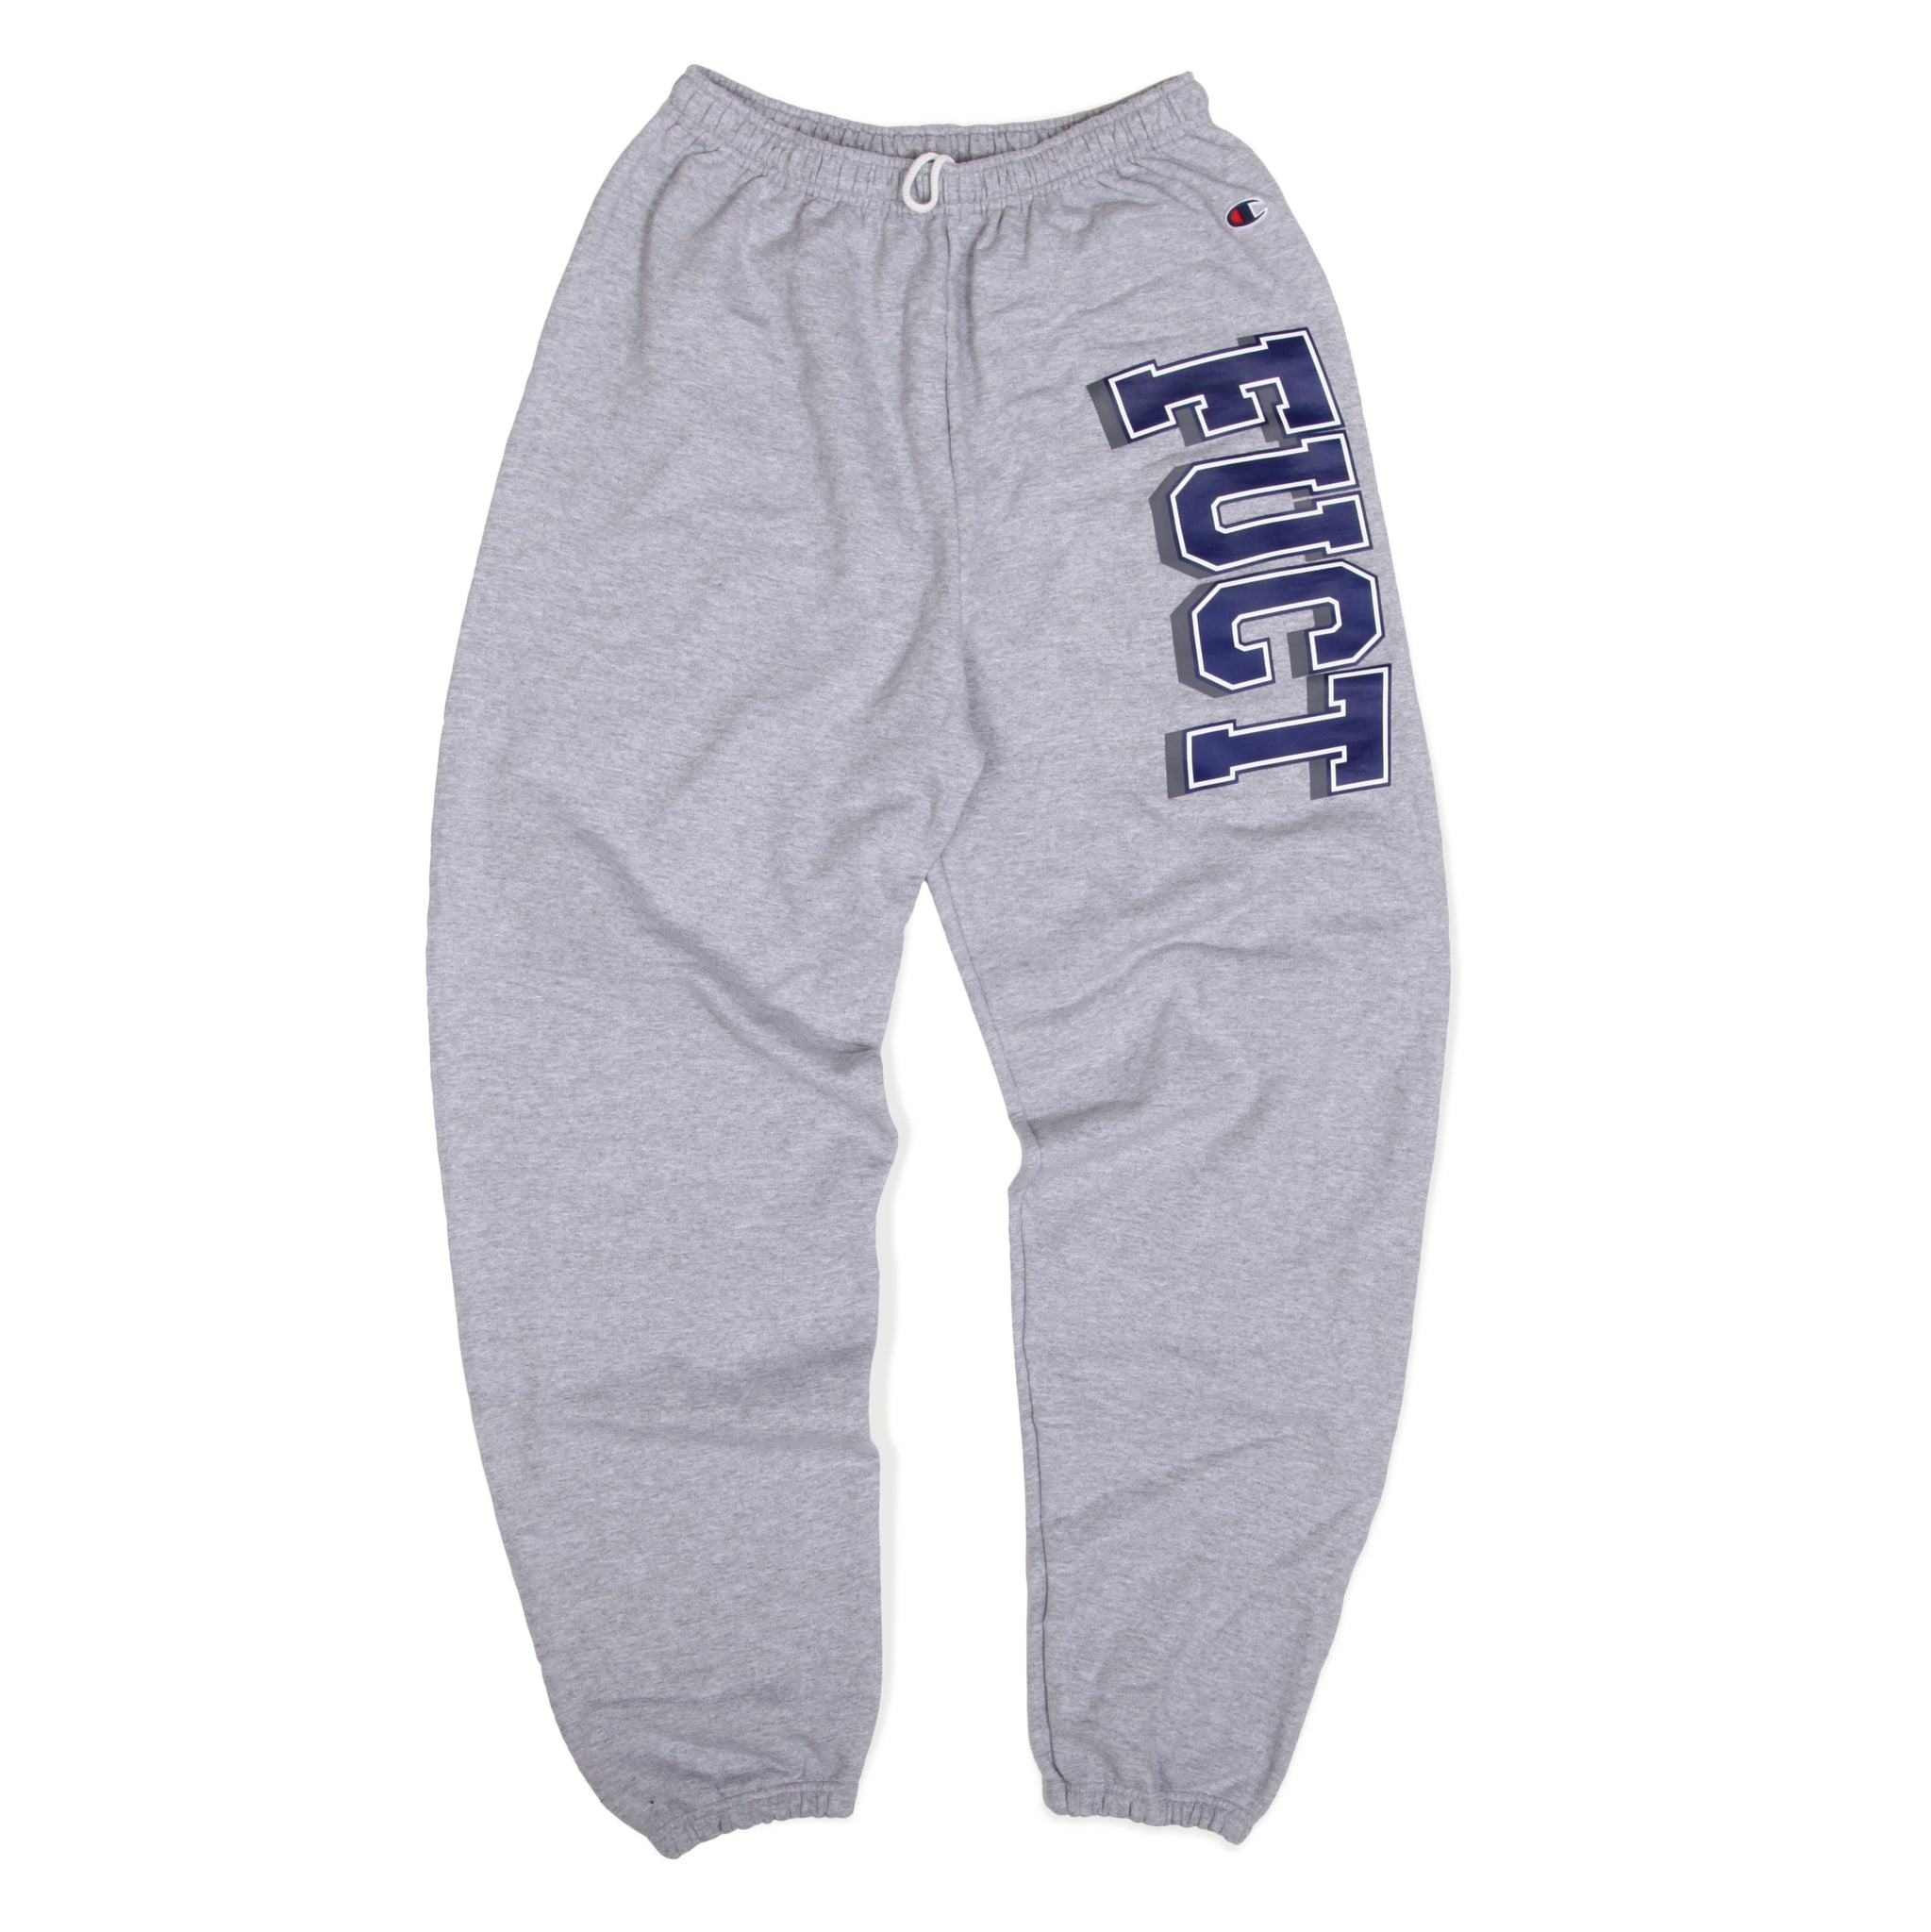 ACADEMY CHAMPION SWEATPANTS ATHLETIC GRAY